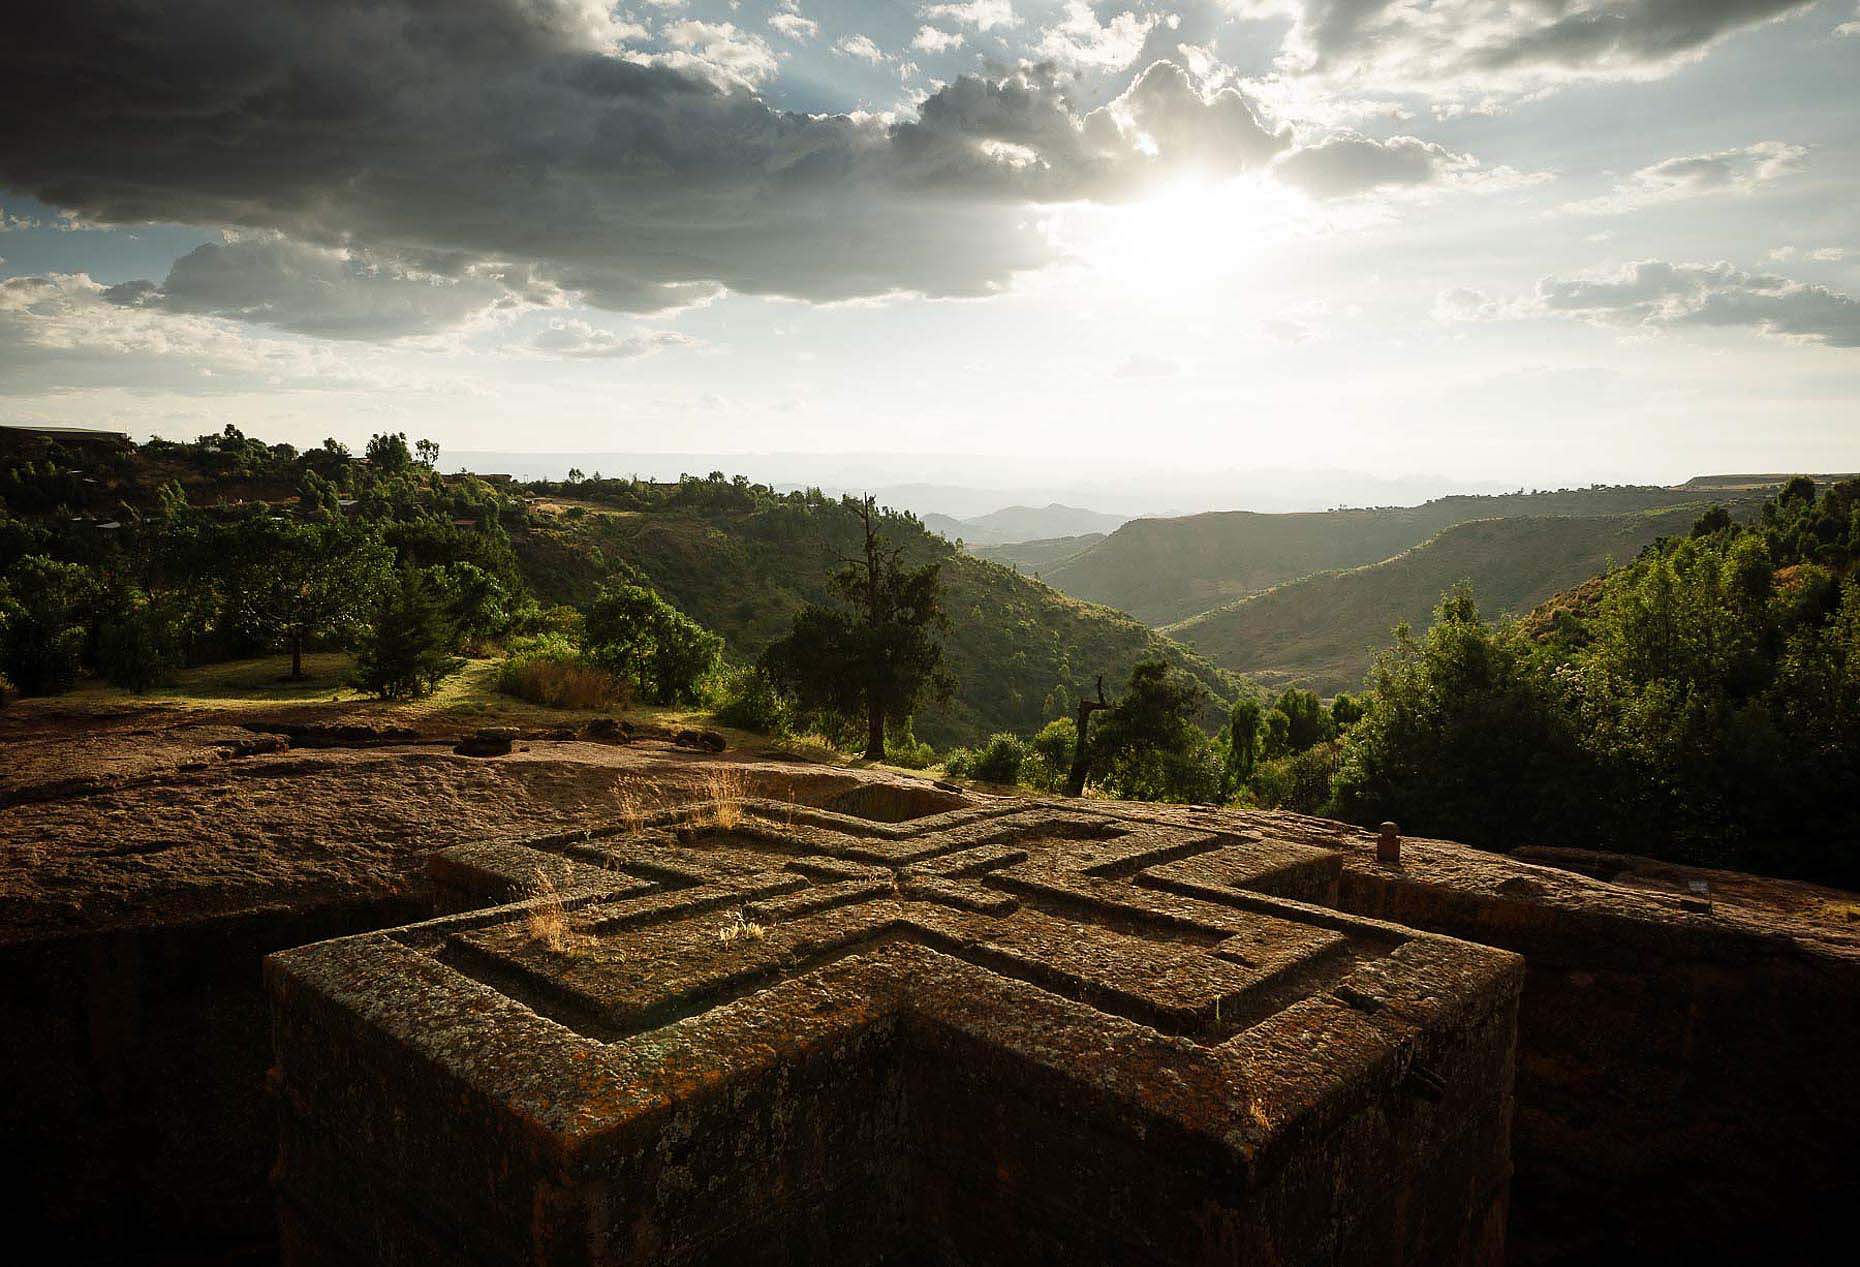 bet-giyorgis-church-rock-lalibela-unesco-site-travel-photography-ethiopia-33